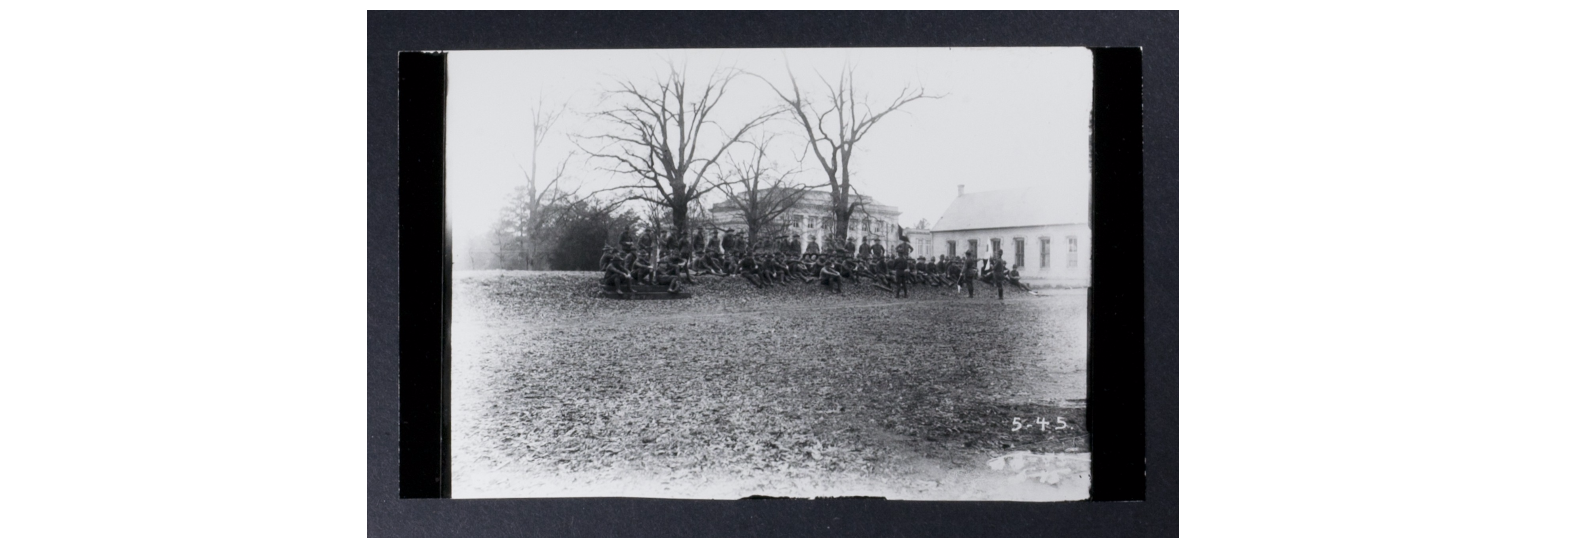 Military students gathered on The Mound, 1918. Photo from Hoole Special Collections Library, Tuscaloosa, Alabama. http://purl.lib.ua.edu/57540